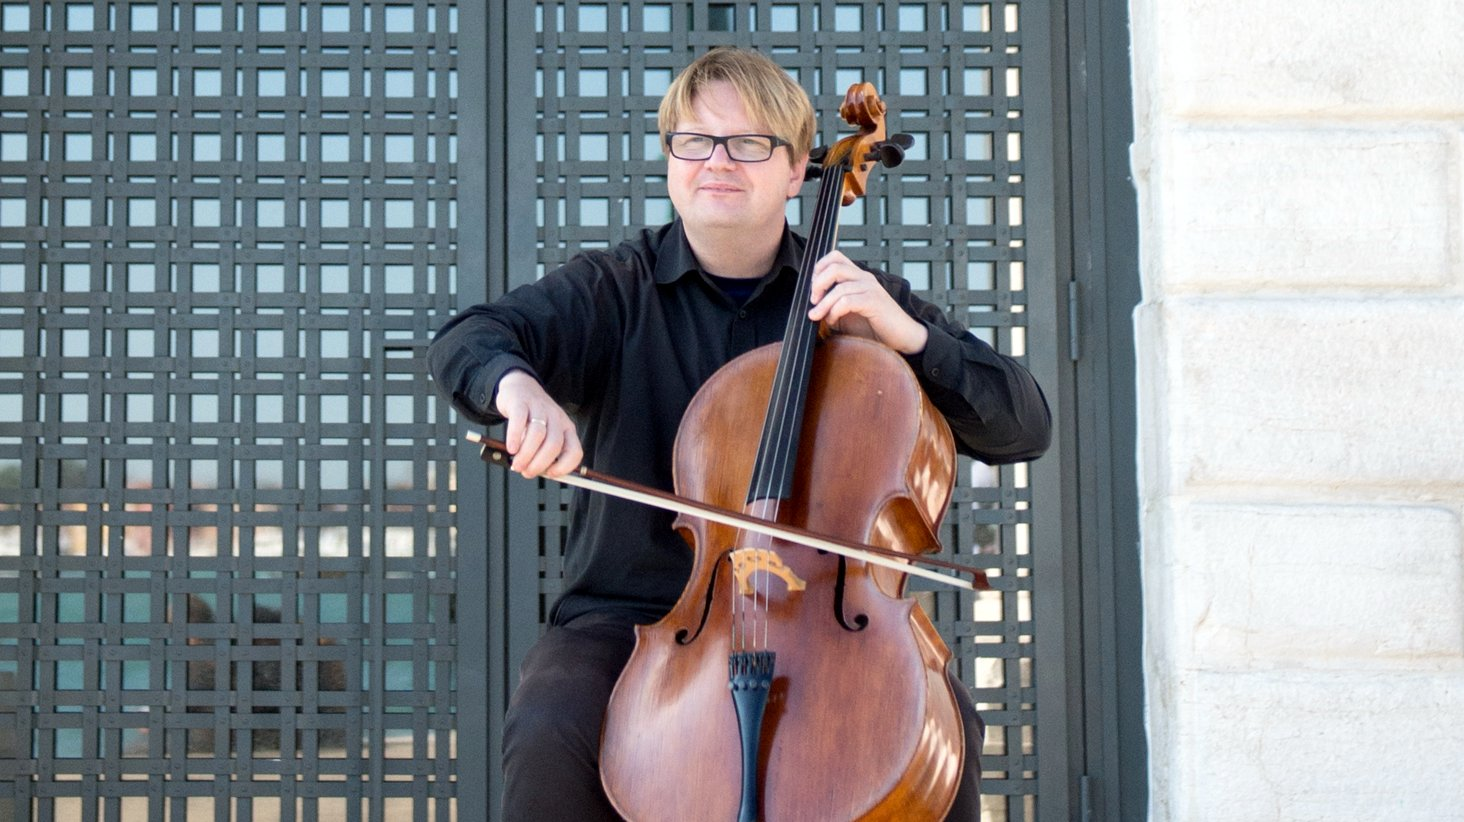 Michał Lech cello venice cellist